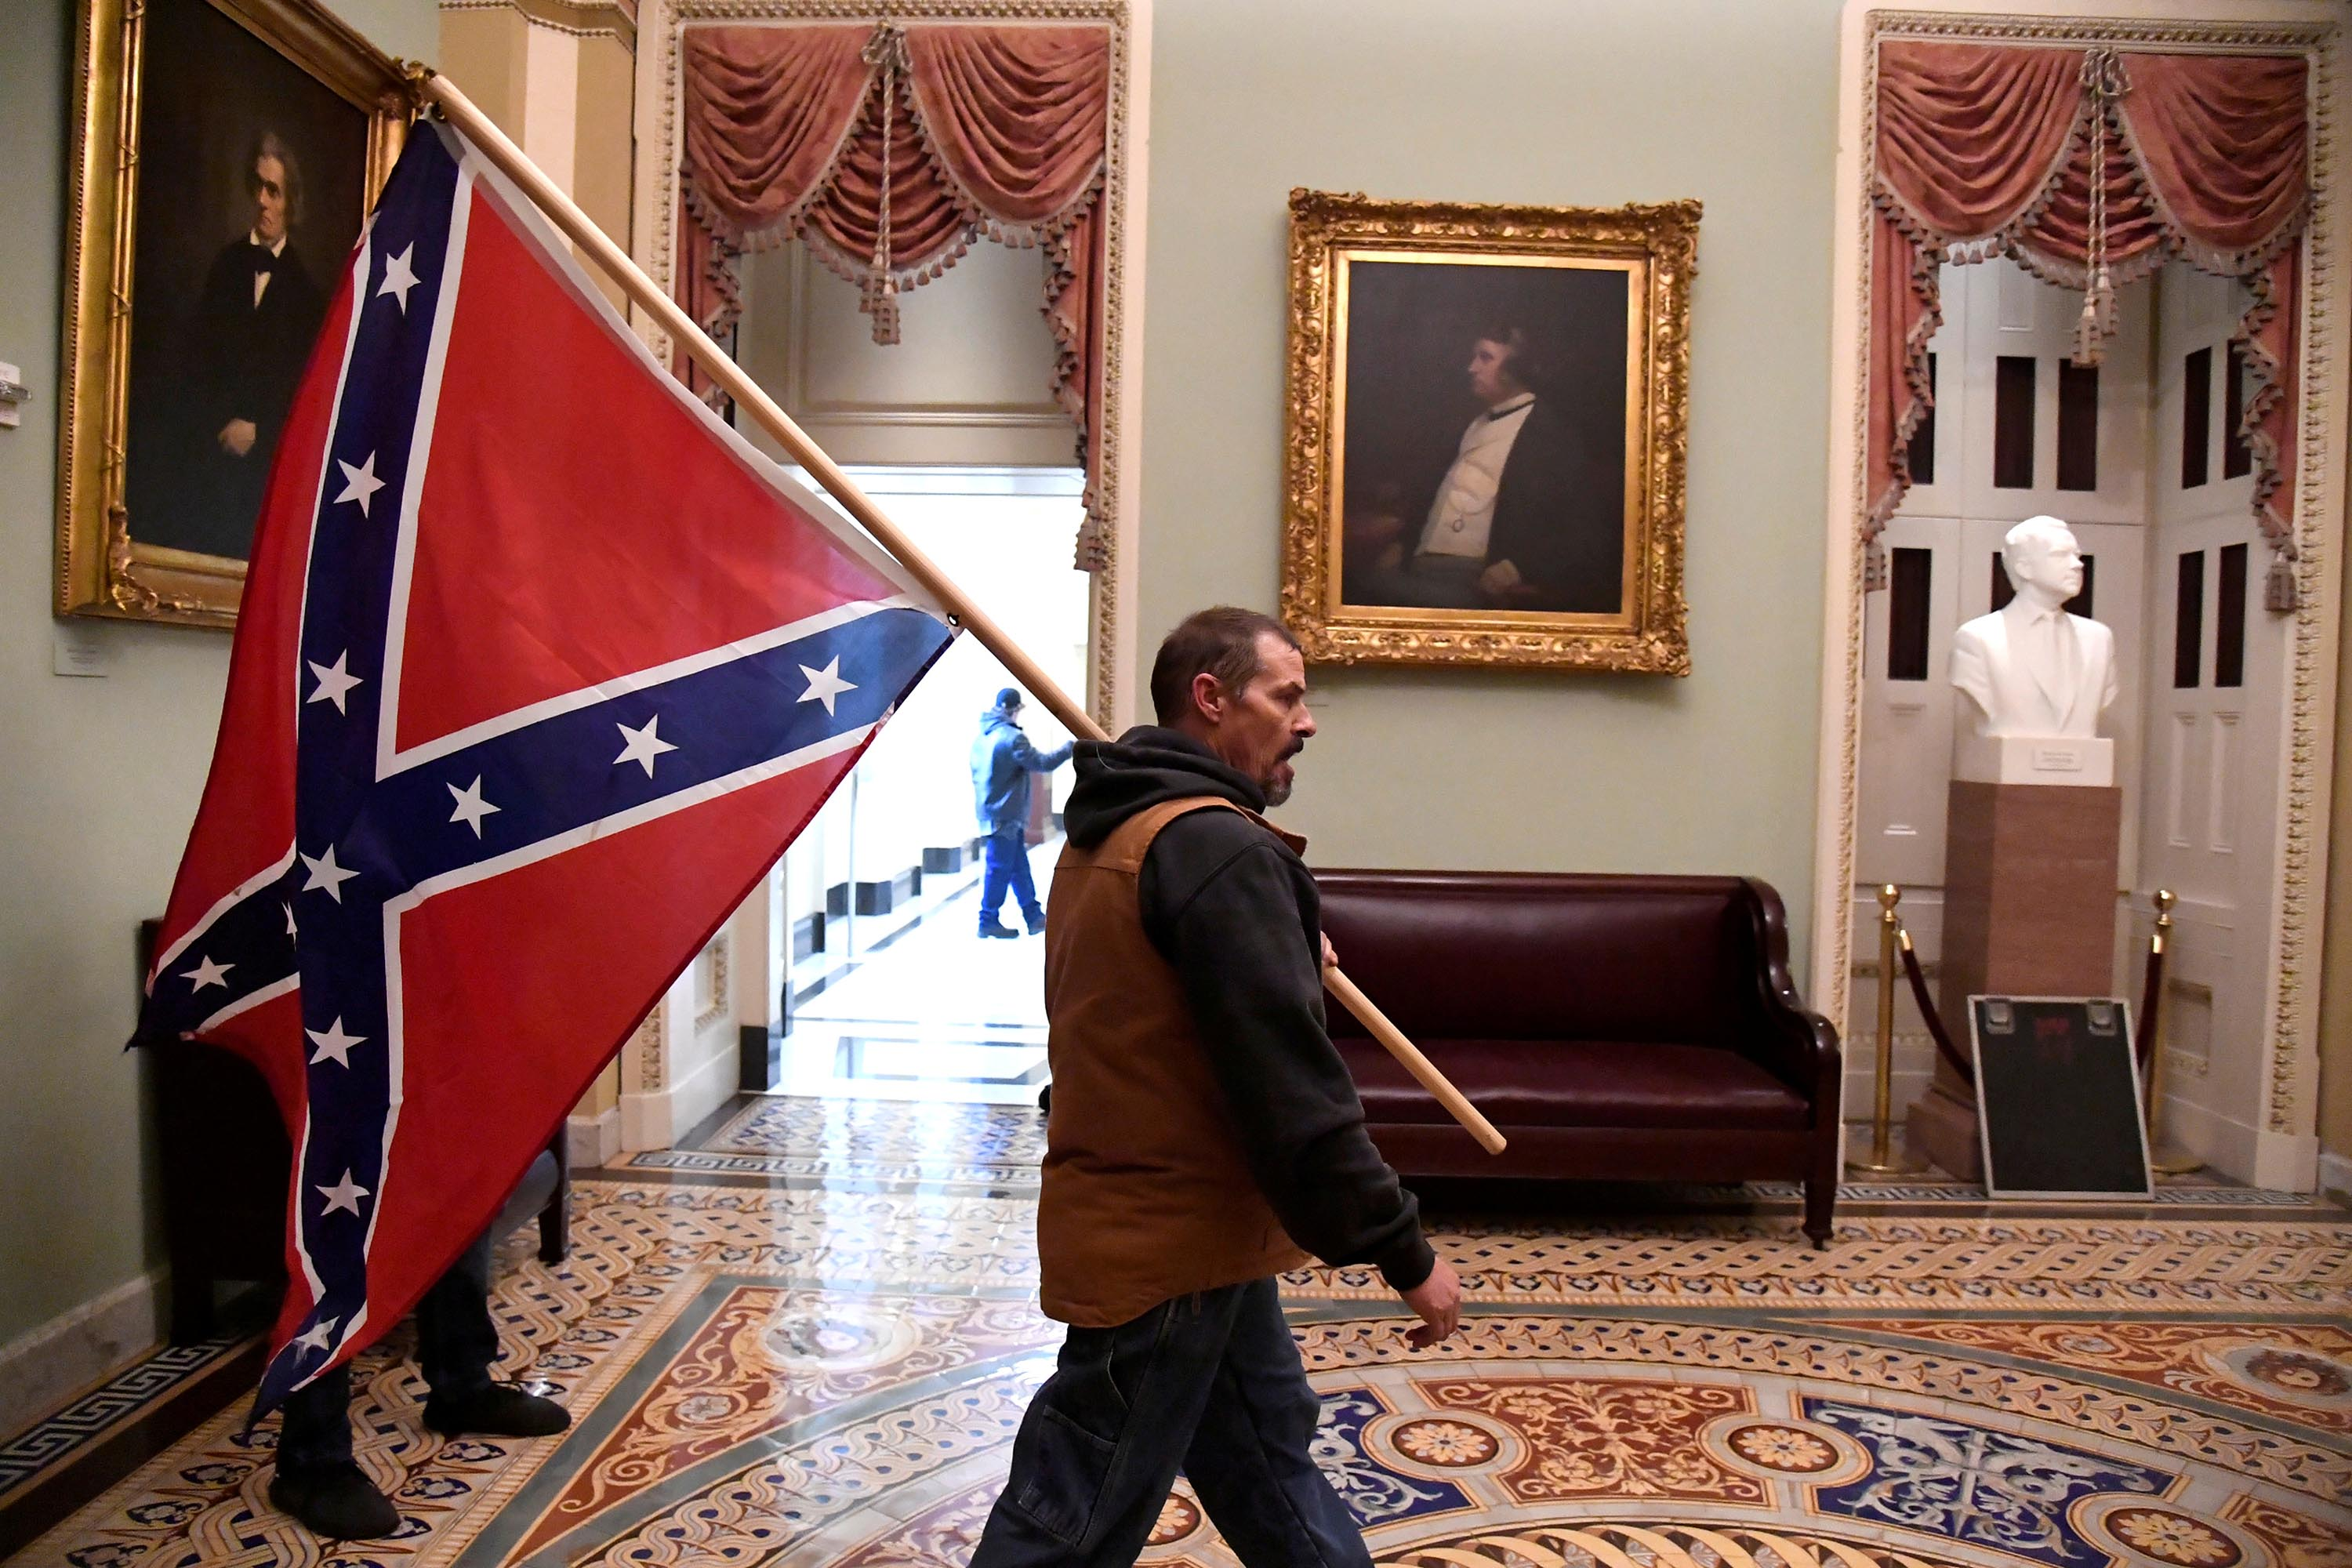 Man carrying Confederate flag inside the US Capitol during riot arrested, identified as Kevin Seefried